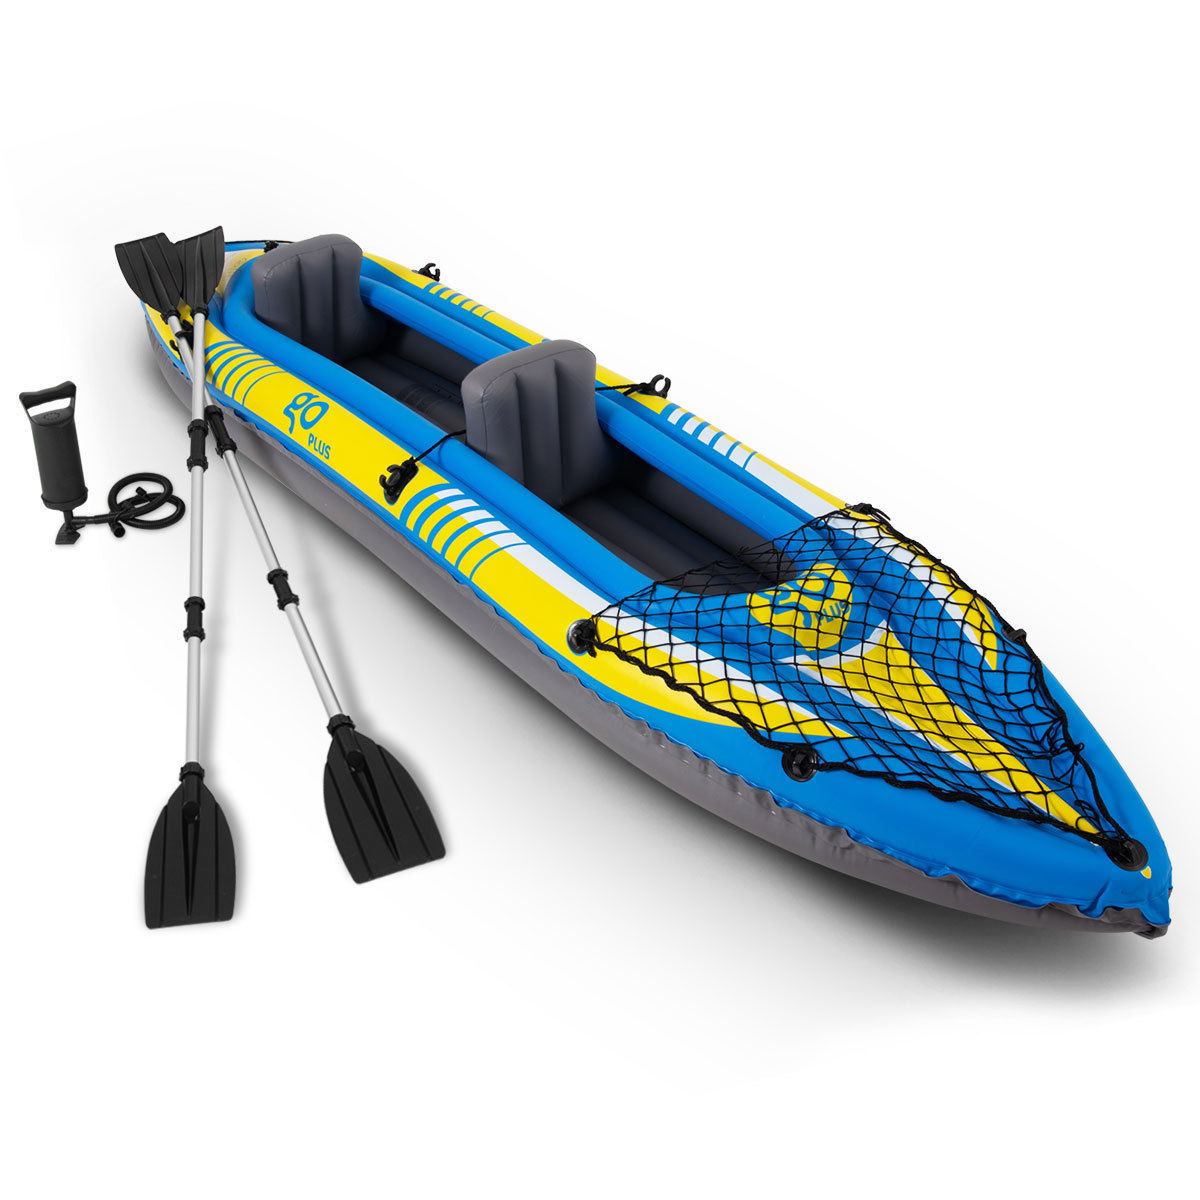 Goplus 2-Person Inflatable Canoe Boat Kayak Set W  Aluminum Alloy Oar Hand Pump by Costway